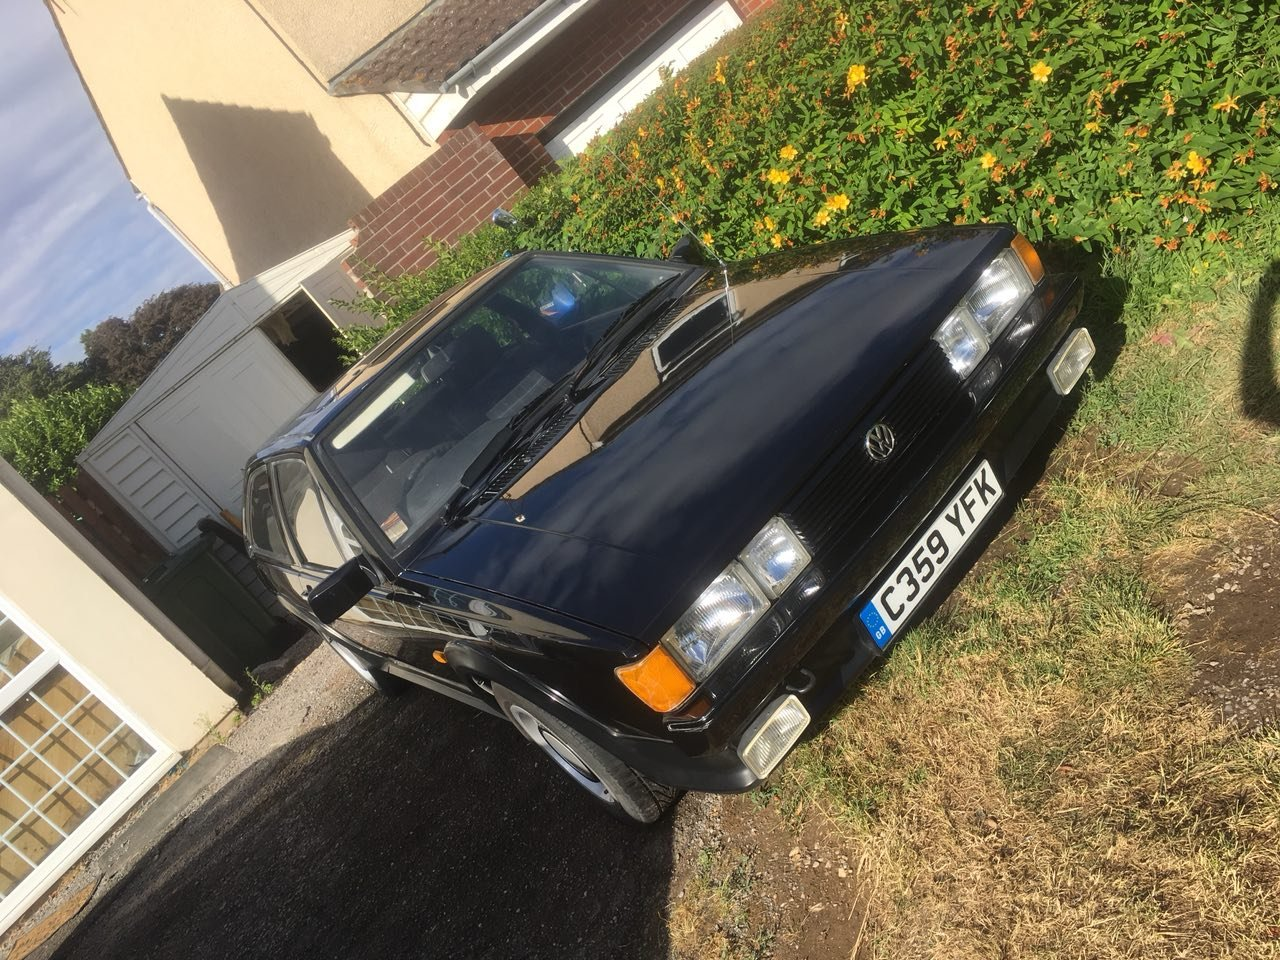 1986 Scirocco Mk2 GT S for sale (Low mileage) SOLD (picture 1 of 6)